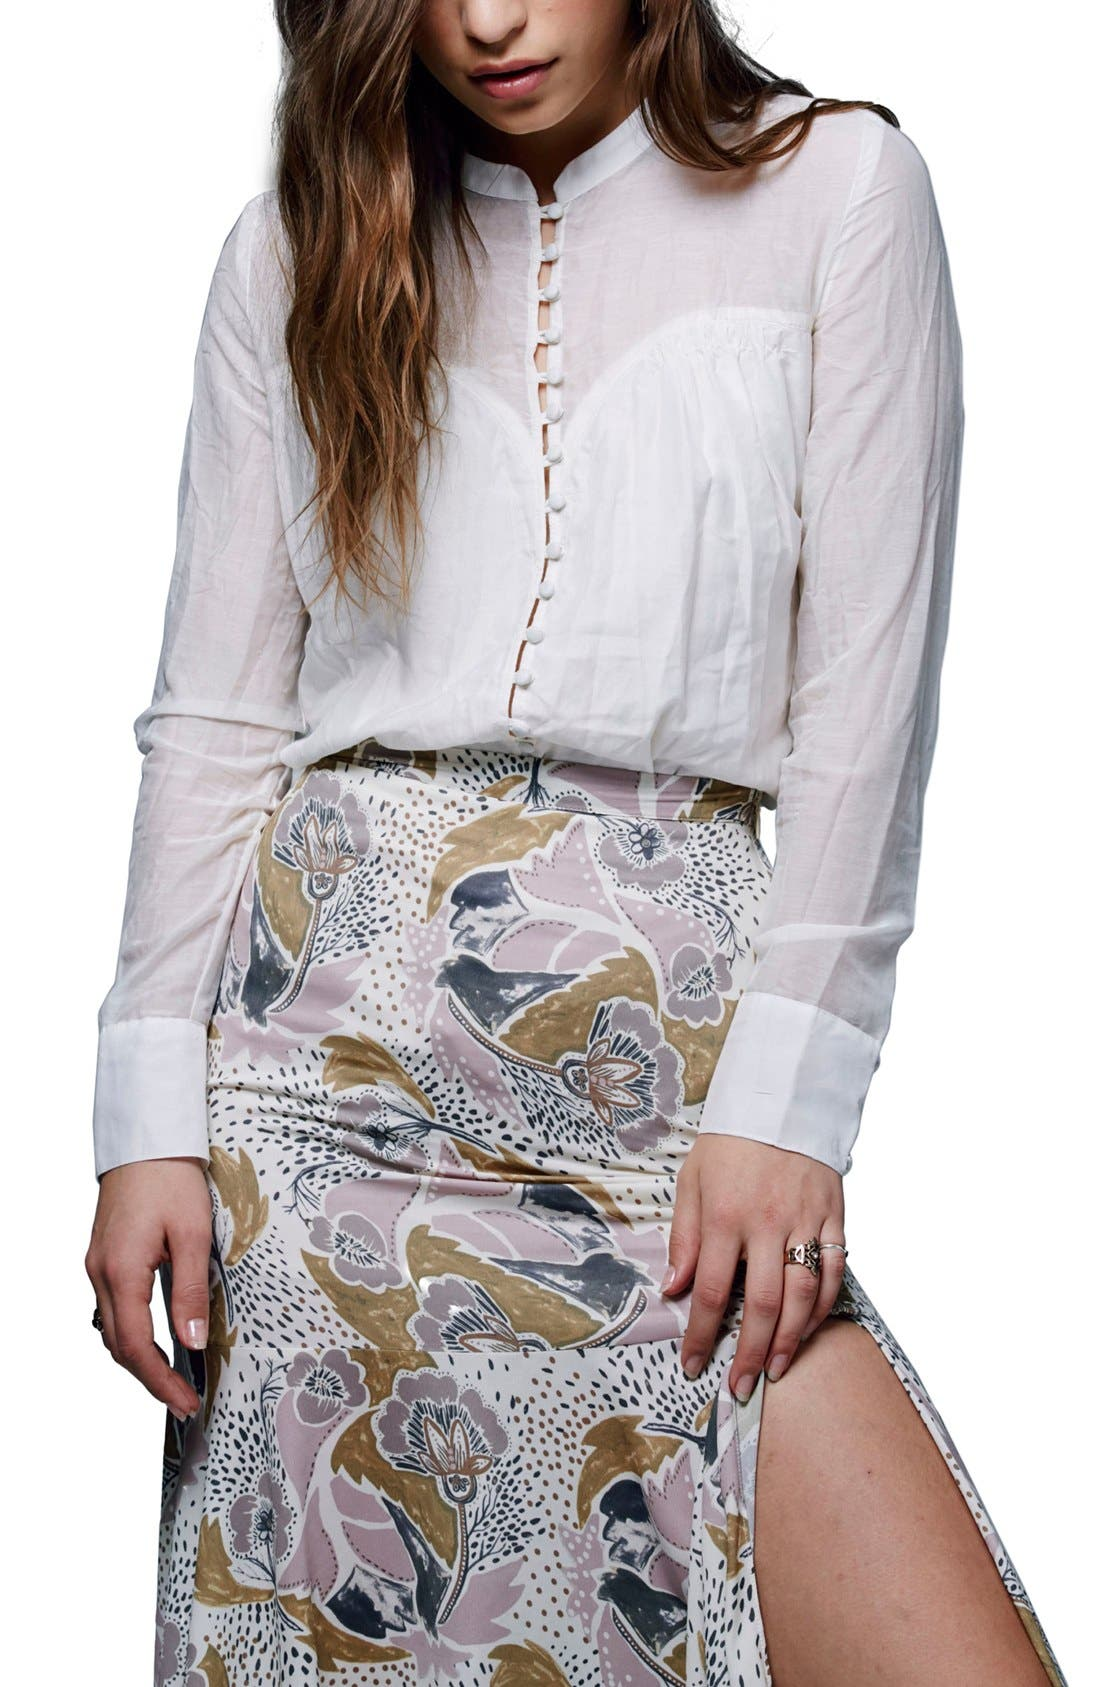 Alternate Image 1 Selected - Free People 'Through and Through' Illusion Yoke Cotton & Silk Top